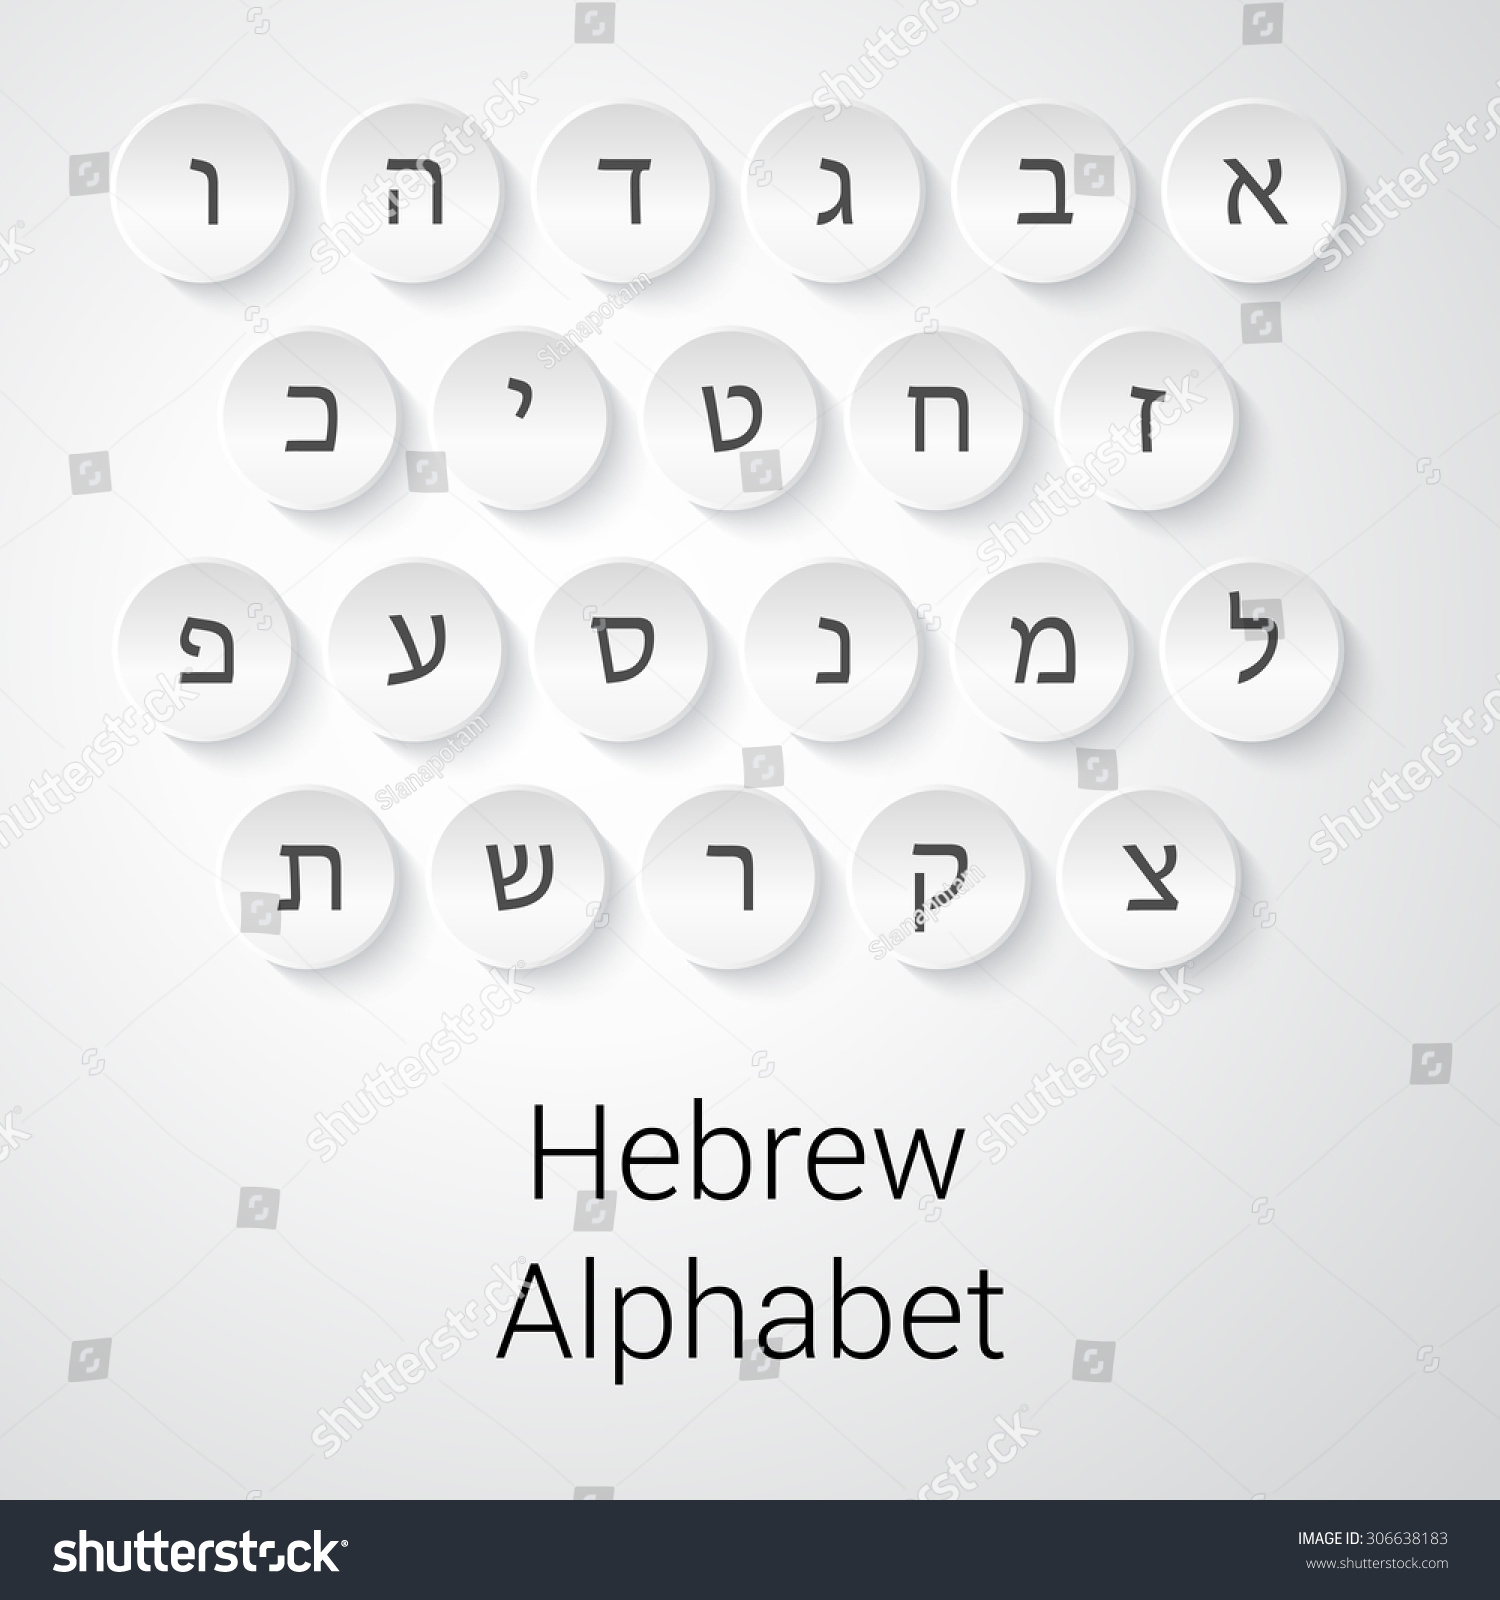 letters of hebrew alphabet round white icons with shadows light grey background vector